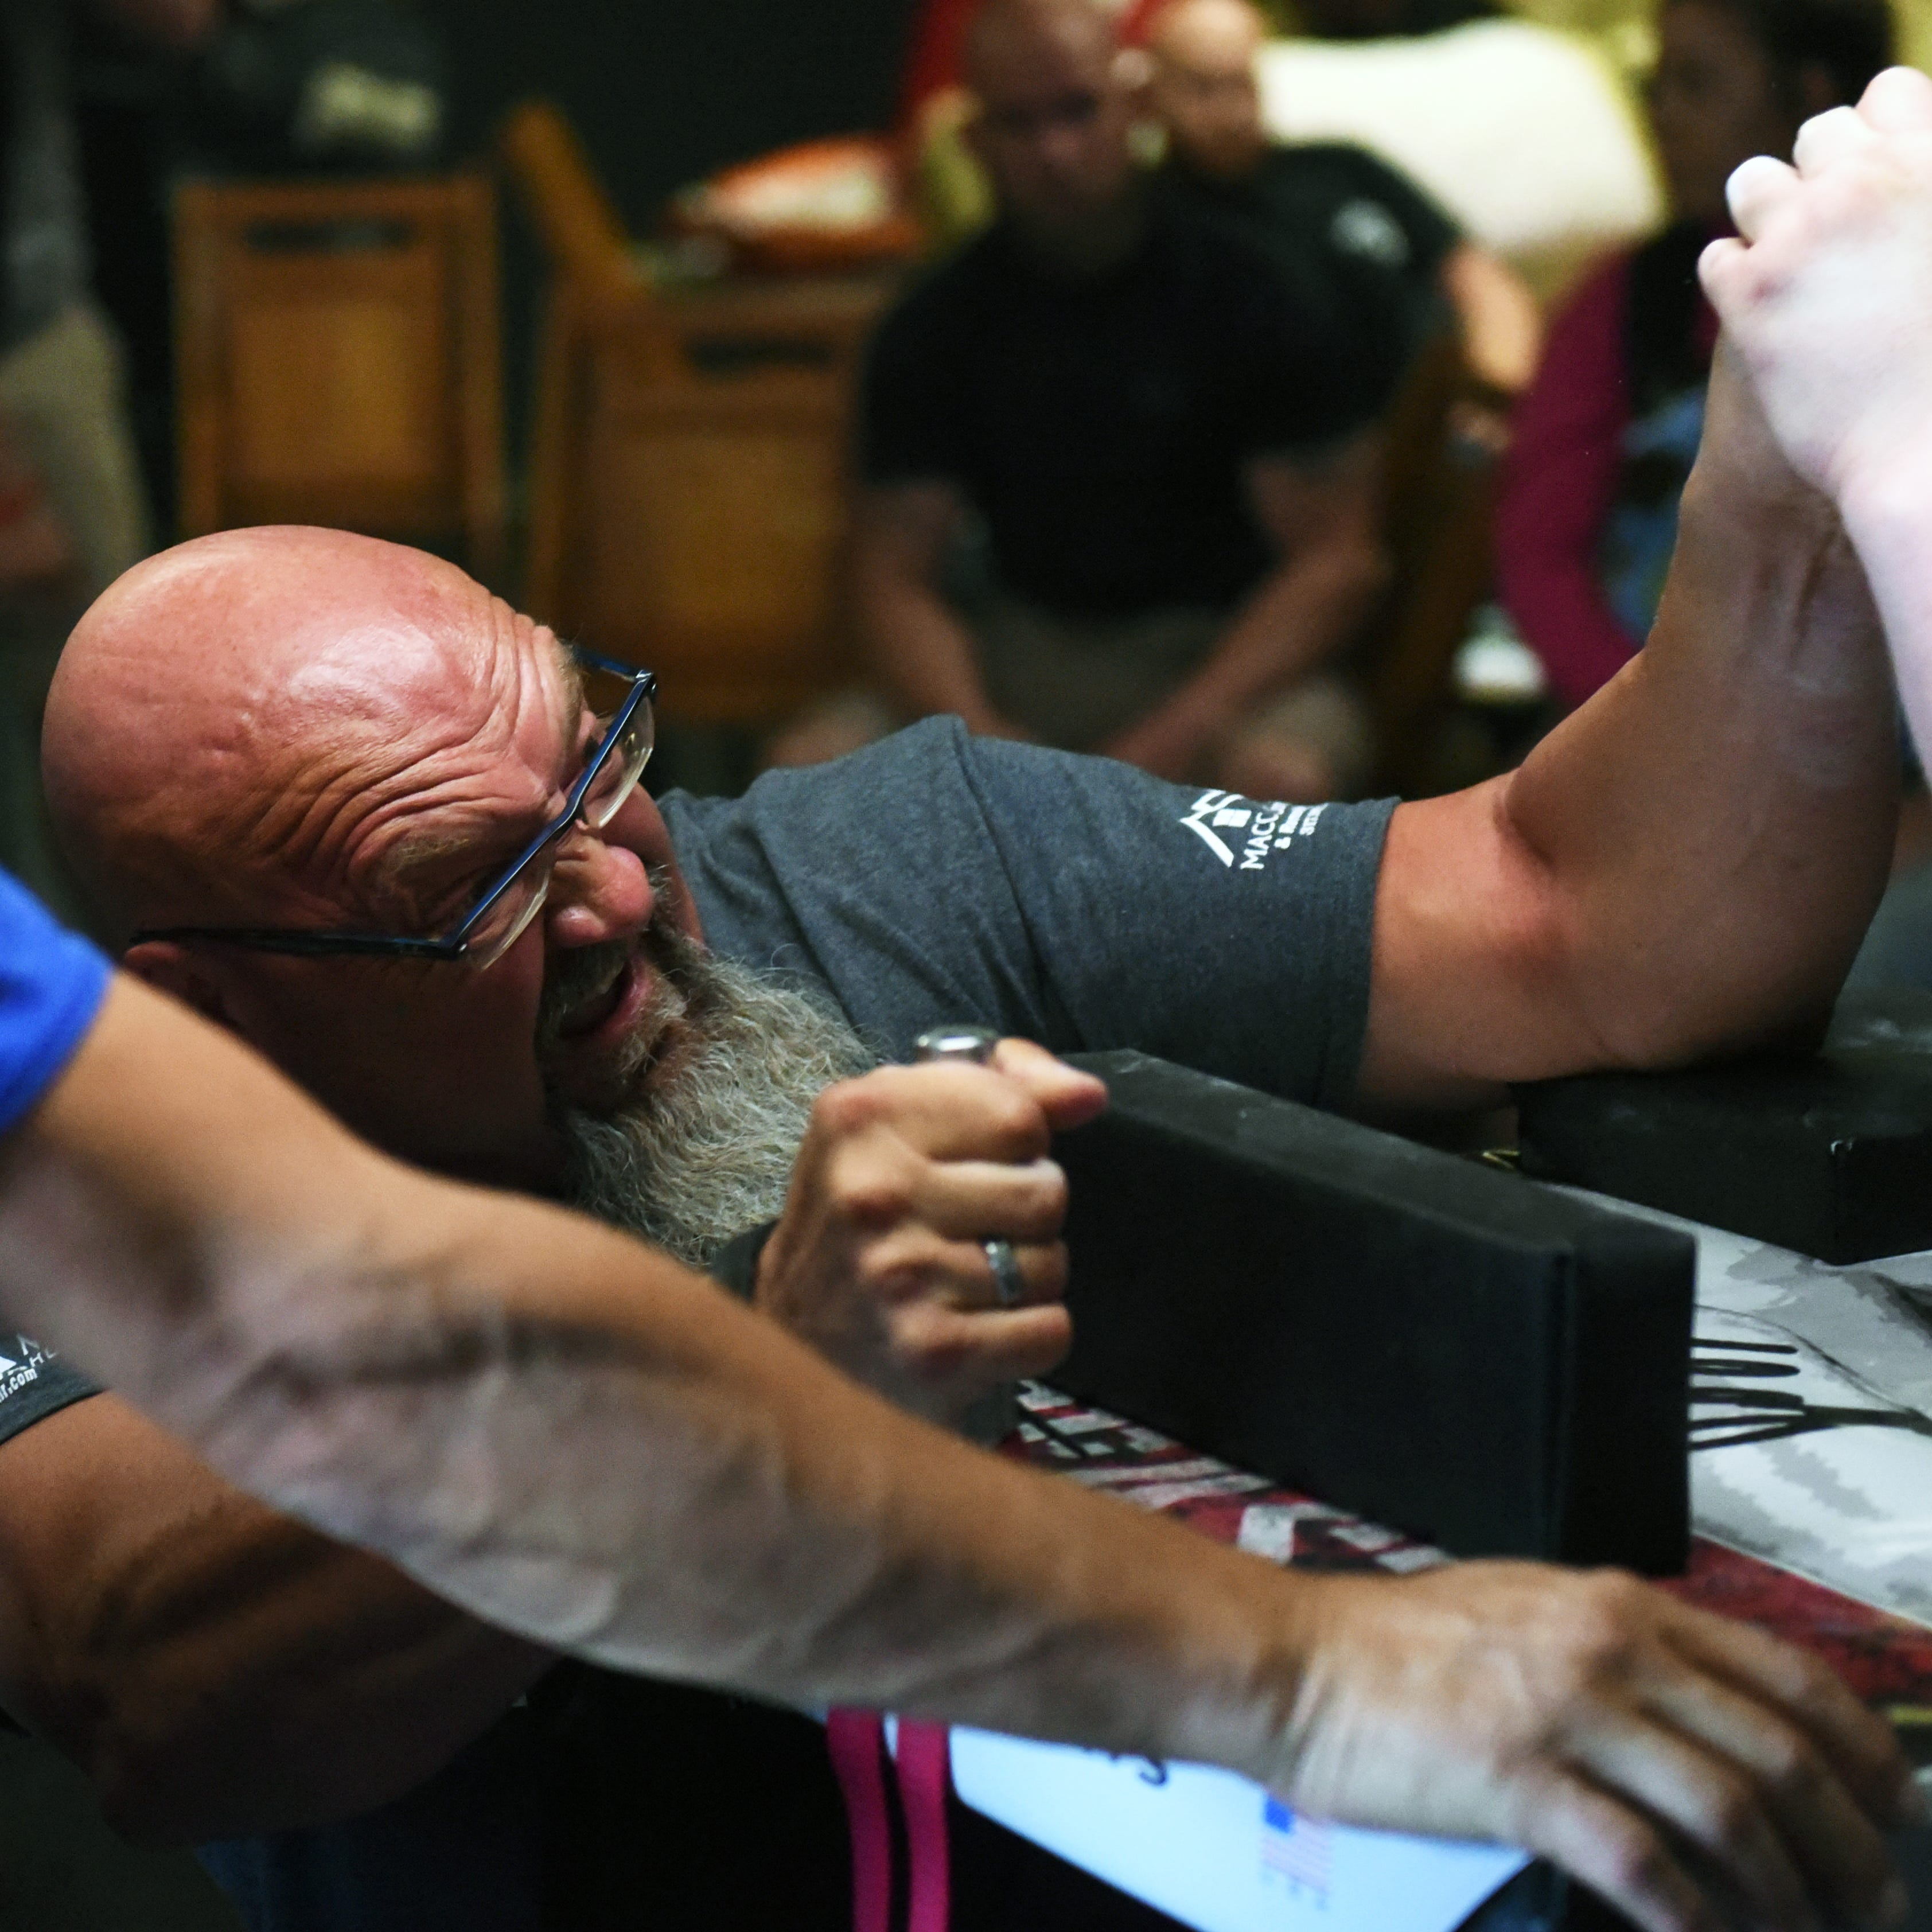 Arm wrestling coming to Angry Bull